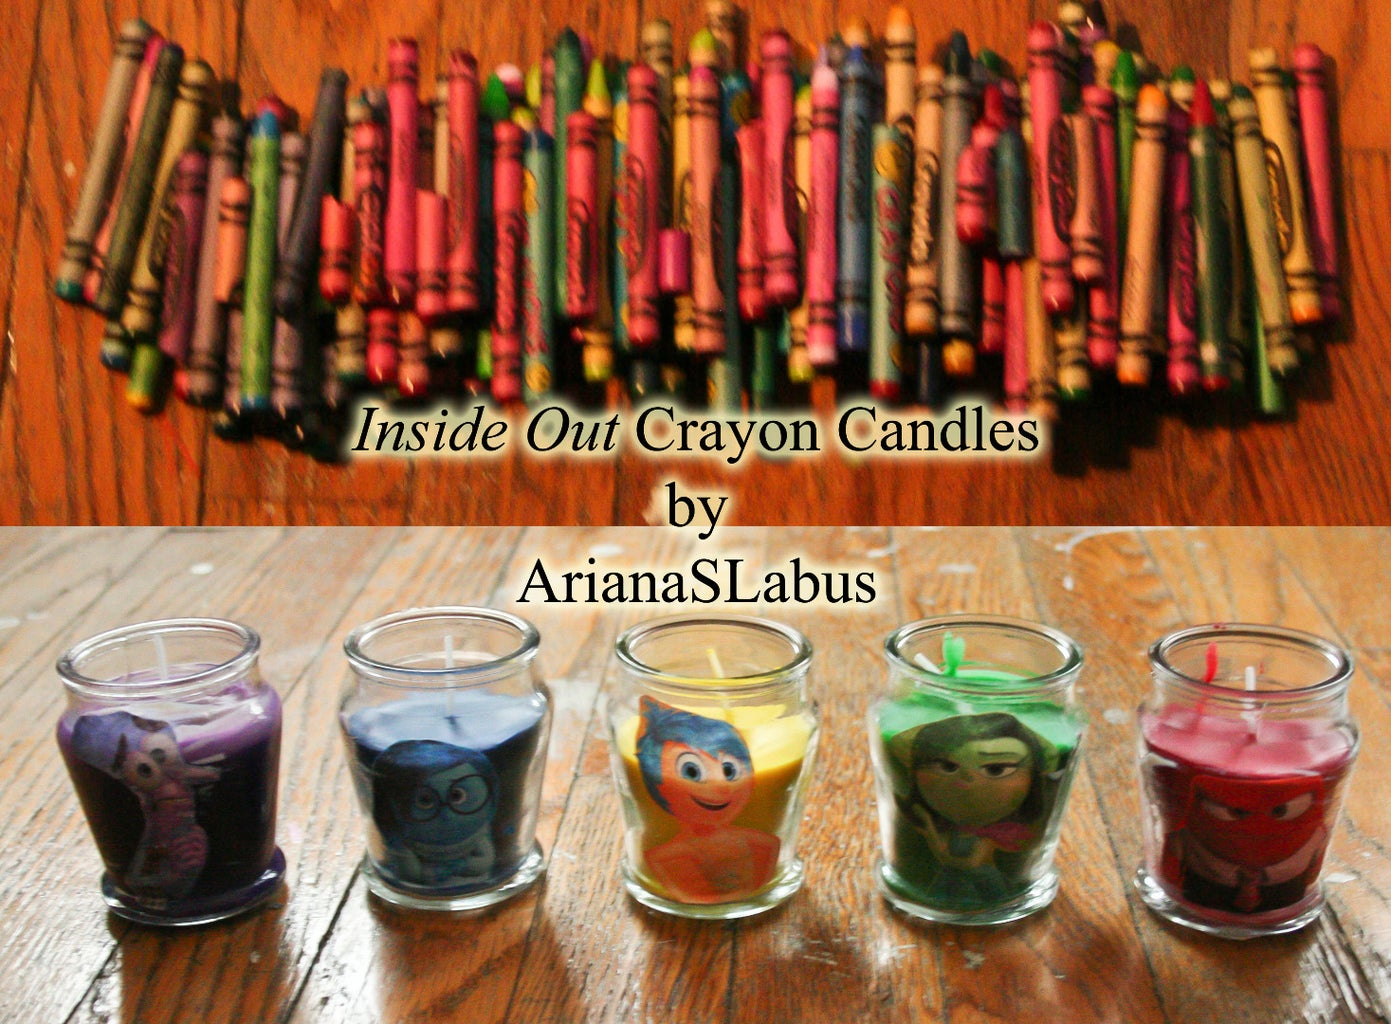 Inside Out Crayon Candles